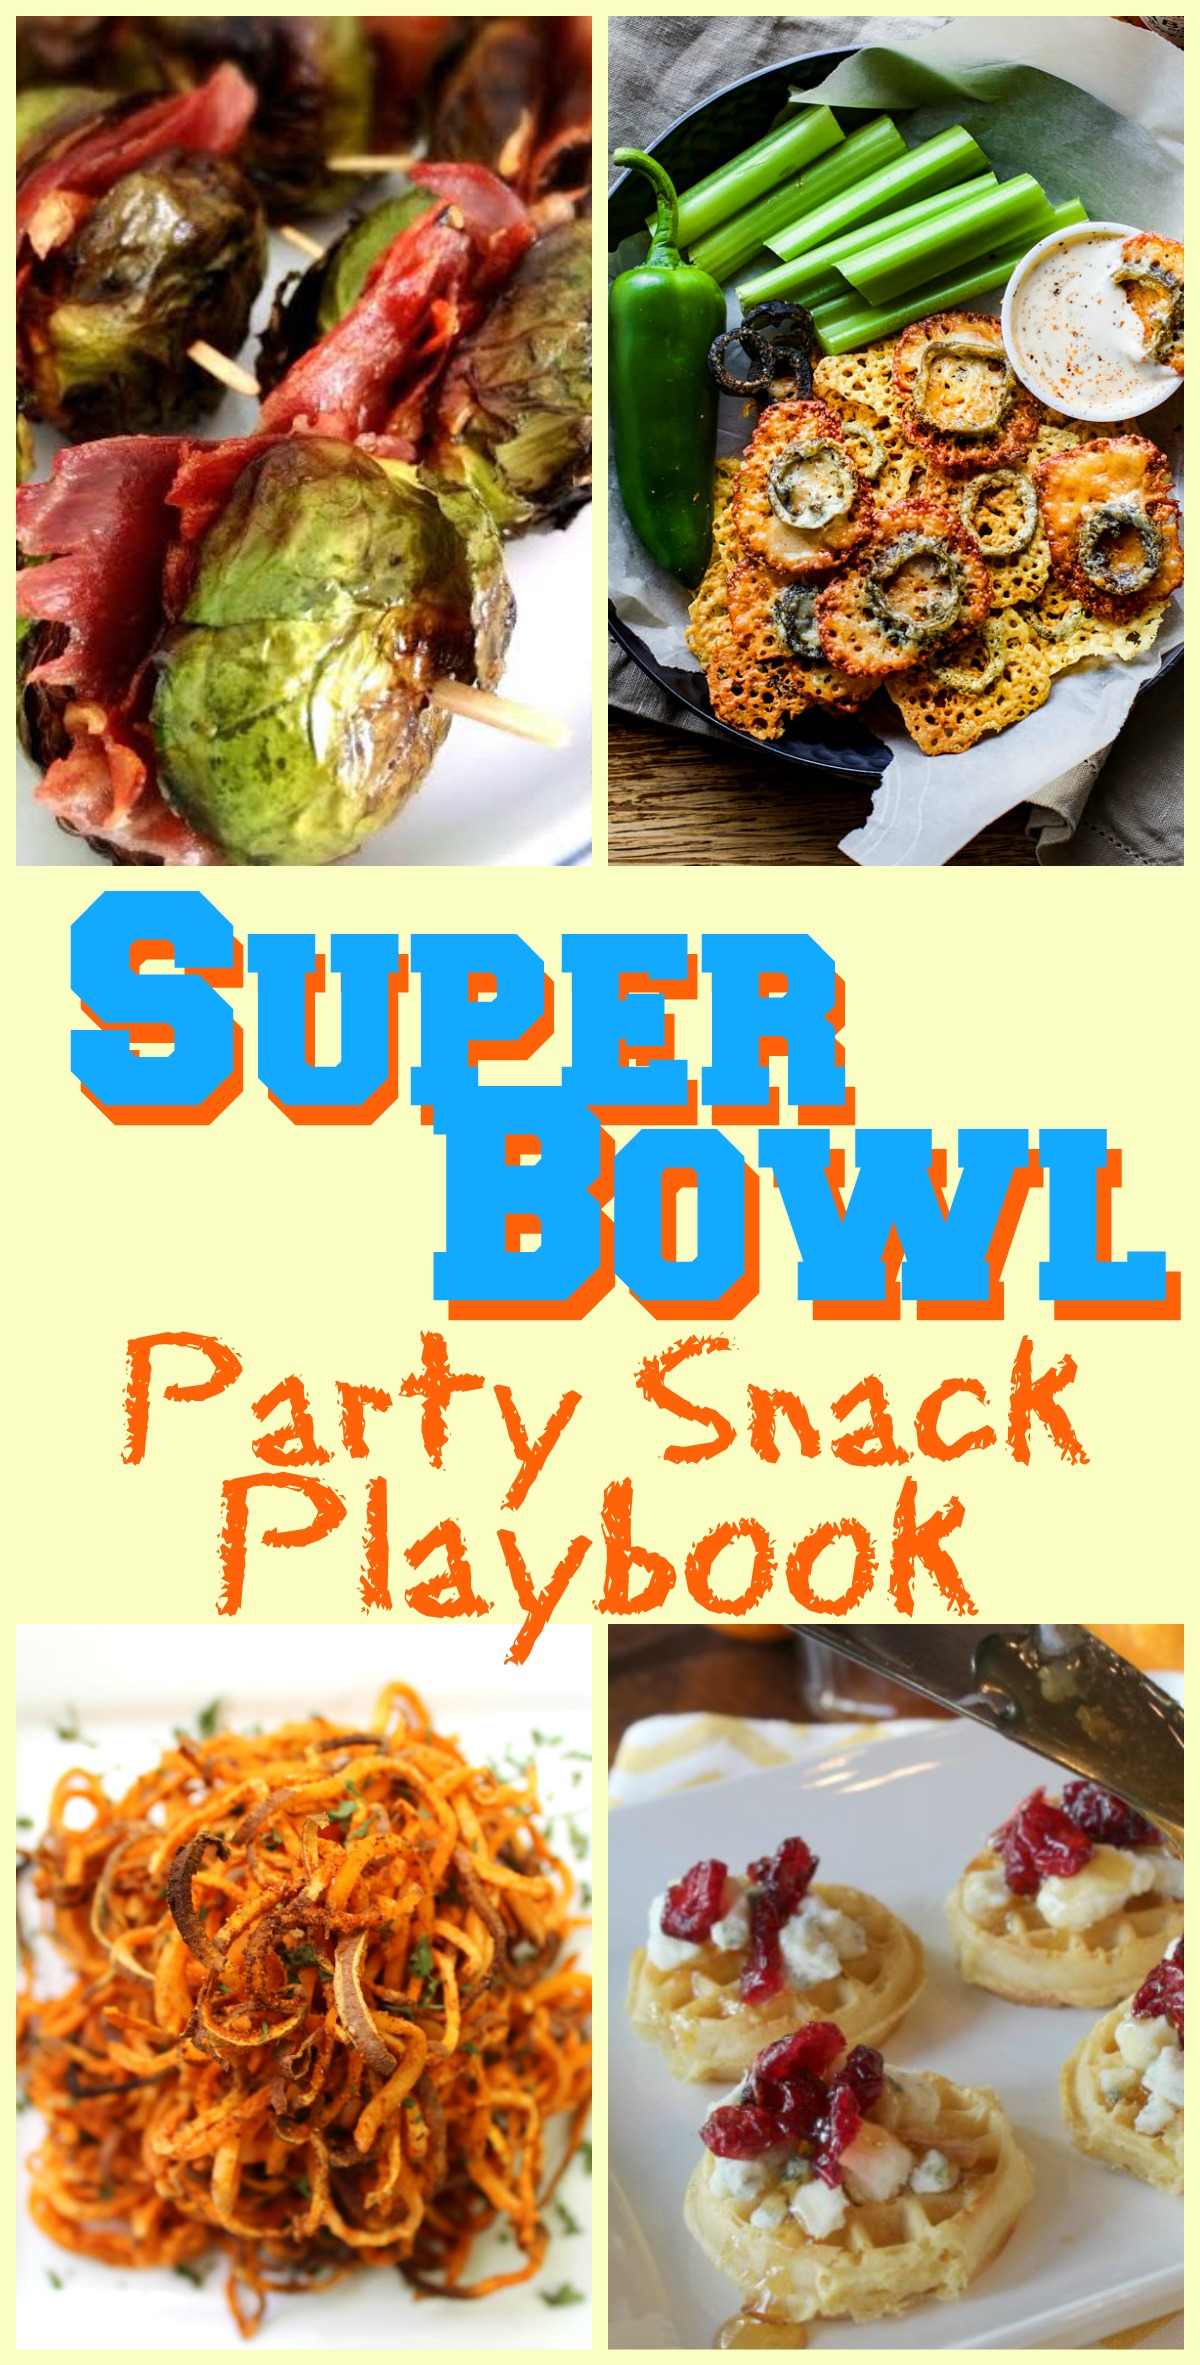 Super Bowl Party Snack Playbook - super easy and (mostly) healthy!